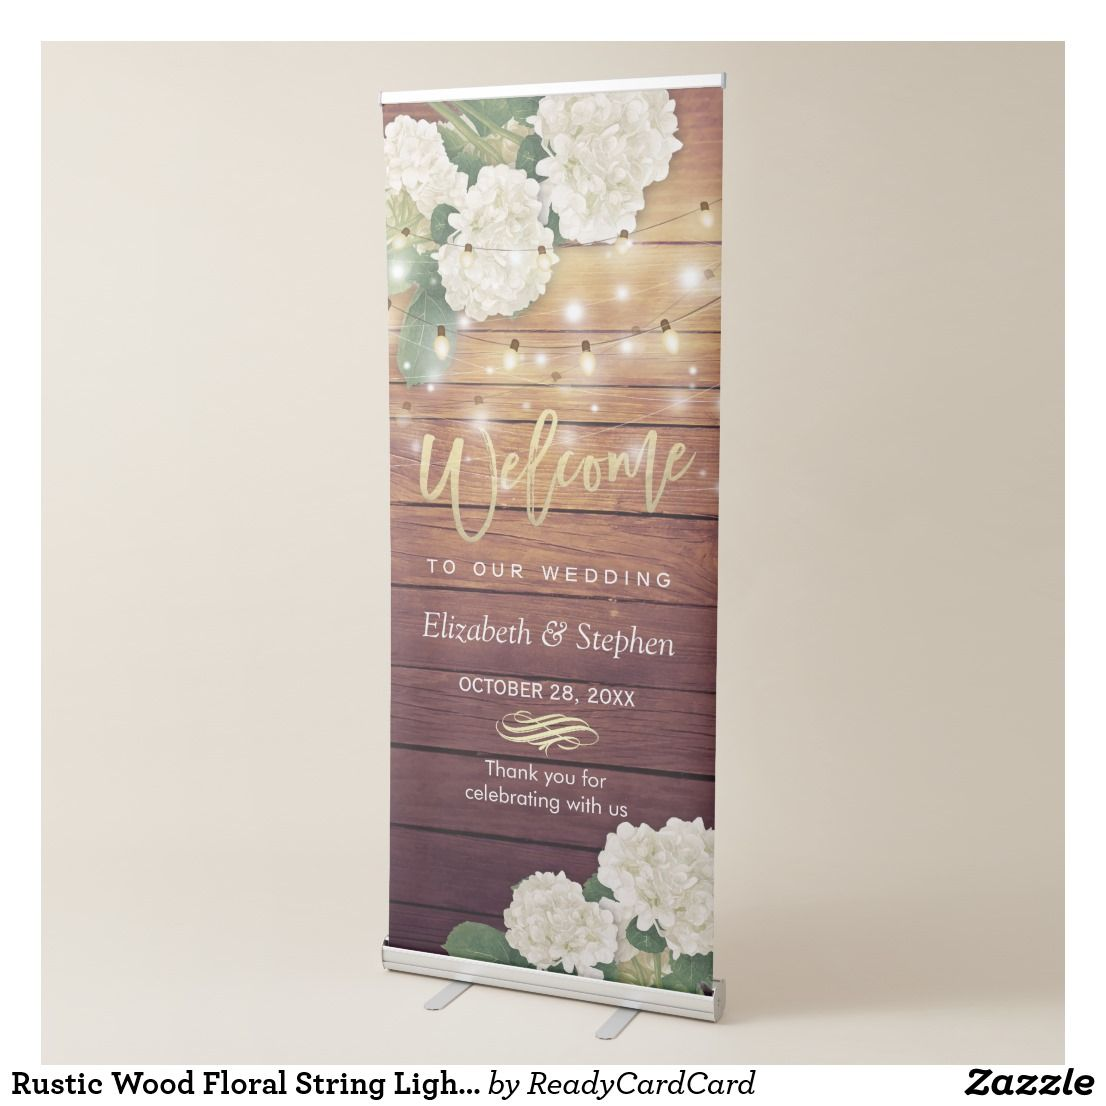 Rustic Wood Floral String Lights Wedding Welcome Retractable Banner Templates